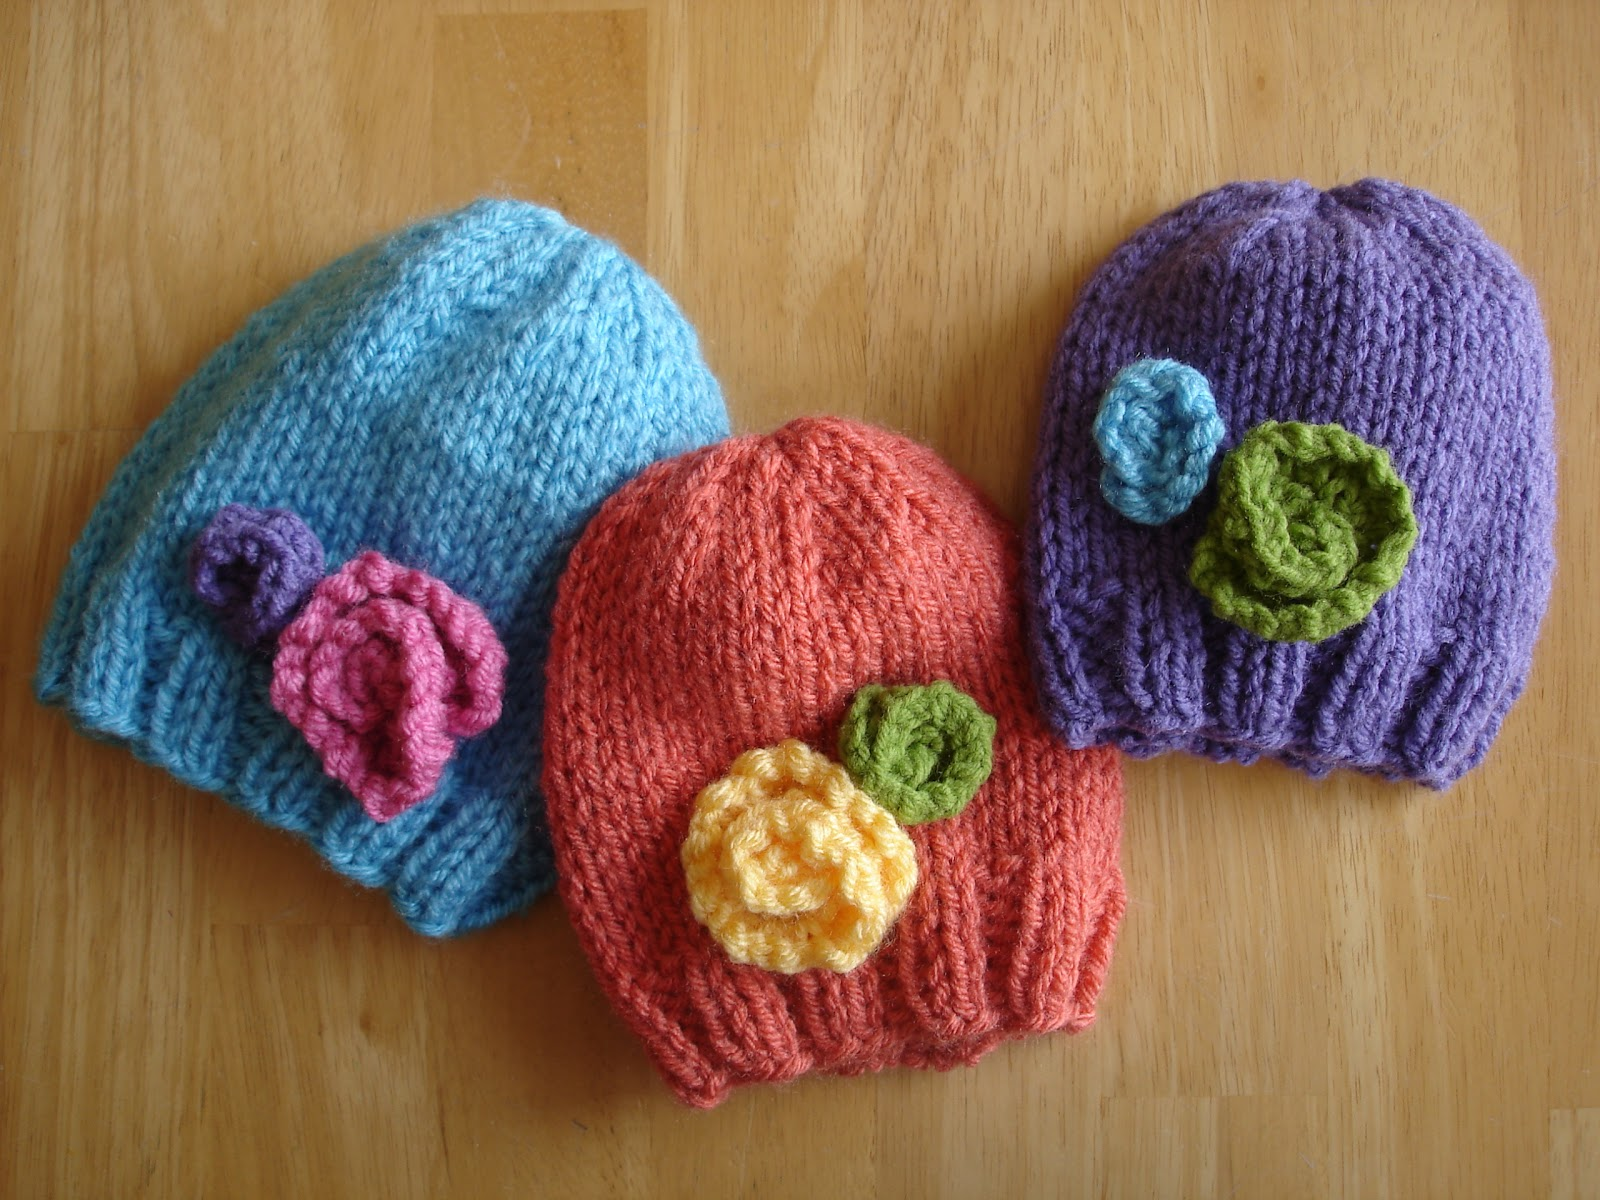 Free Knitting Pattern For Baby Hats : Fiber Flux: Free Knitting Pattern! Baby In Bloom Hats